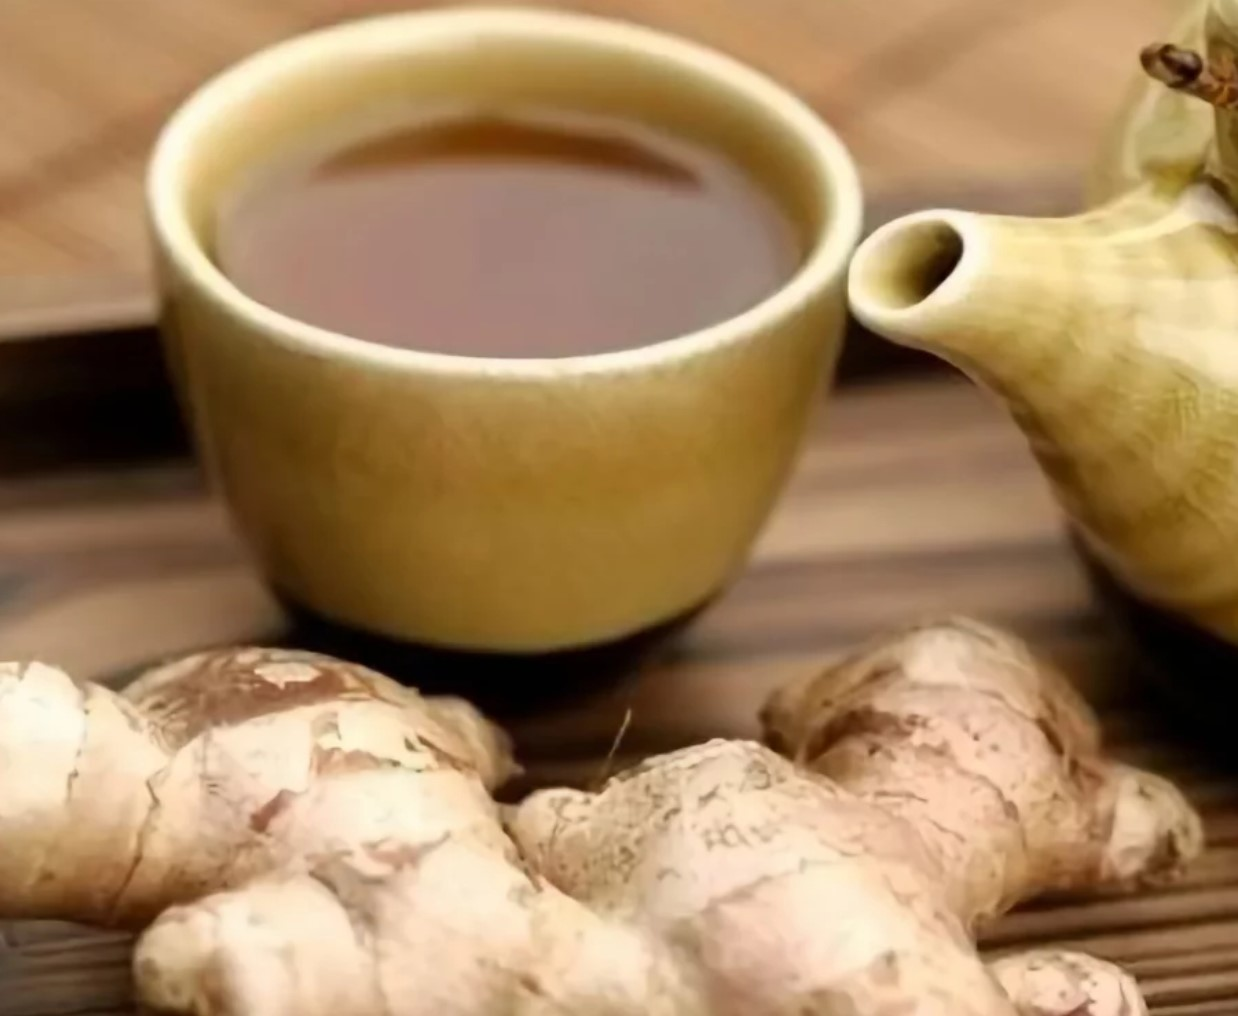 Ginger Blaast ginger-image 11 Proven Health Benefits of Ginger (Series: Part 4) Ginger Products Help